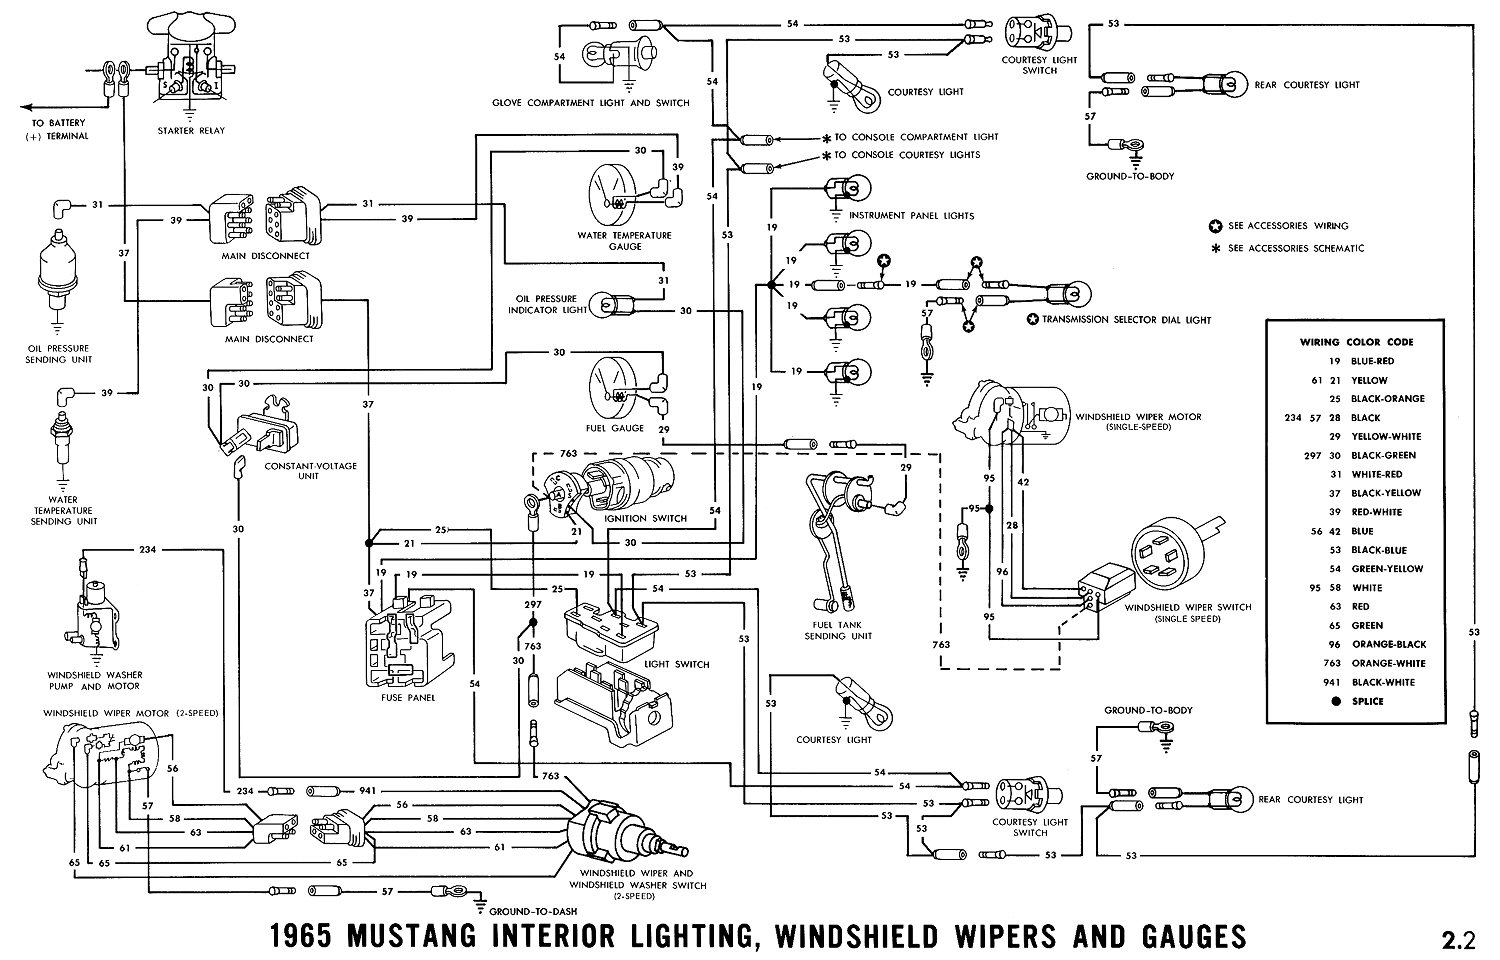 hight resolution of 1968 cadillac dash wiring diagram detailed schematics diagram rh lelandlutheran com 1959 cadillac radio wiring diagram